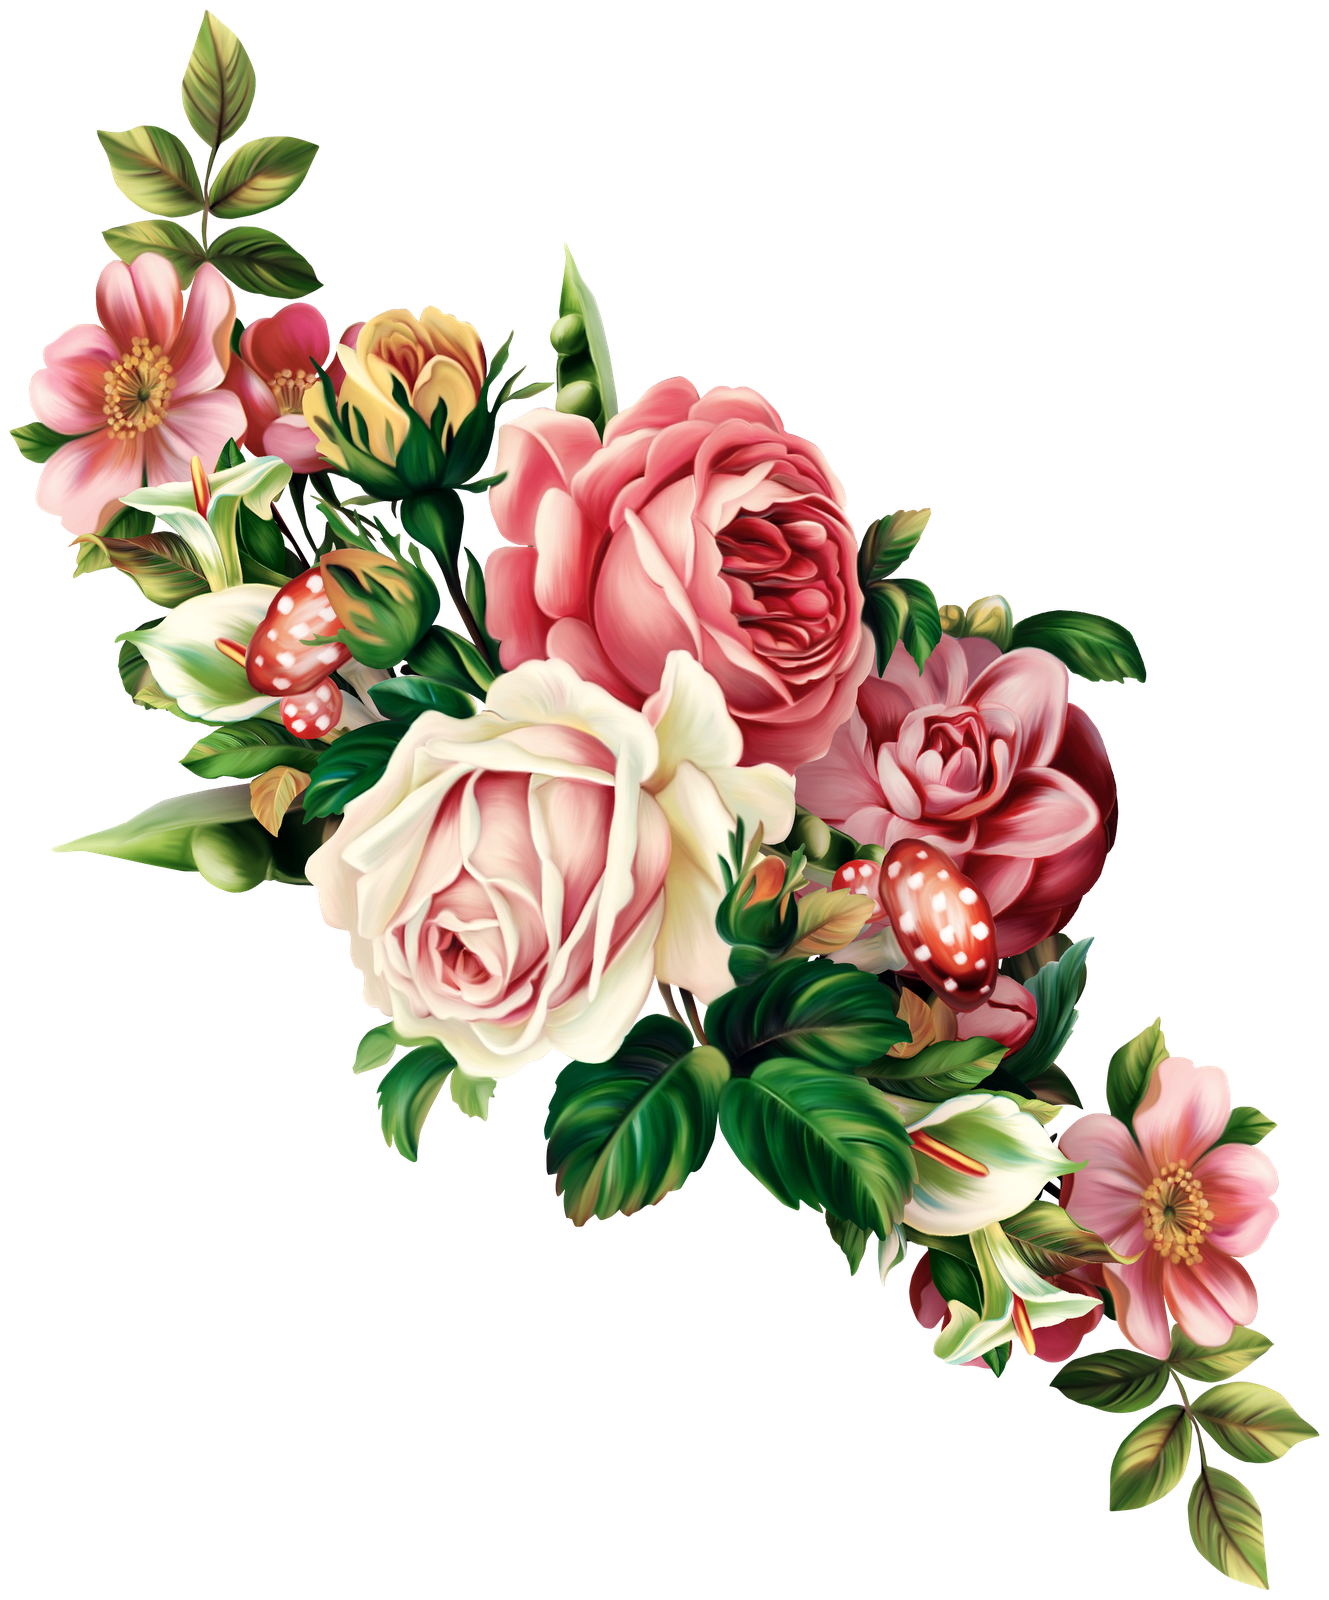 Rose Garland Clipart - Clipart Kid